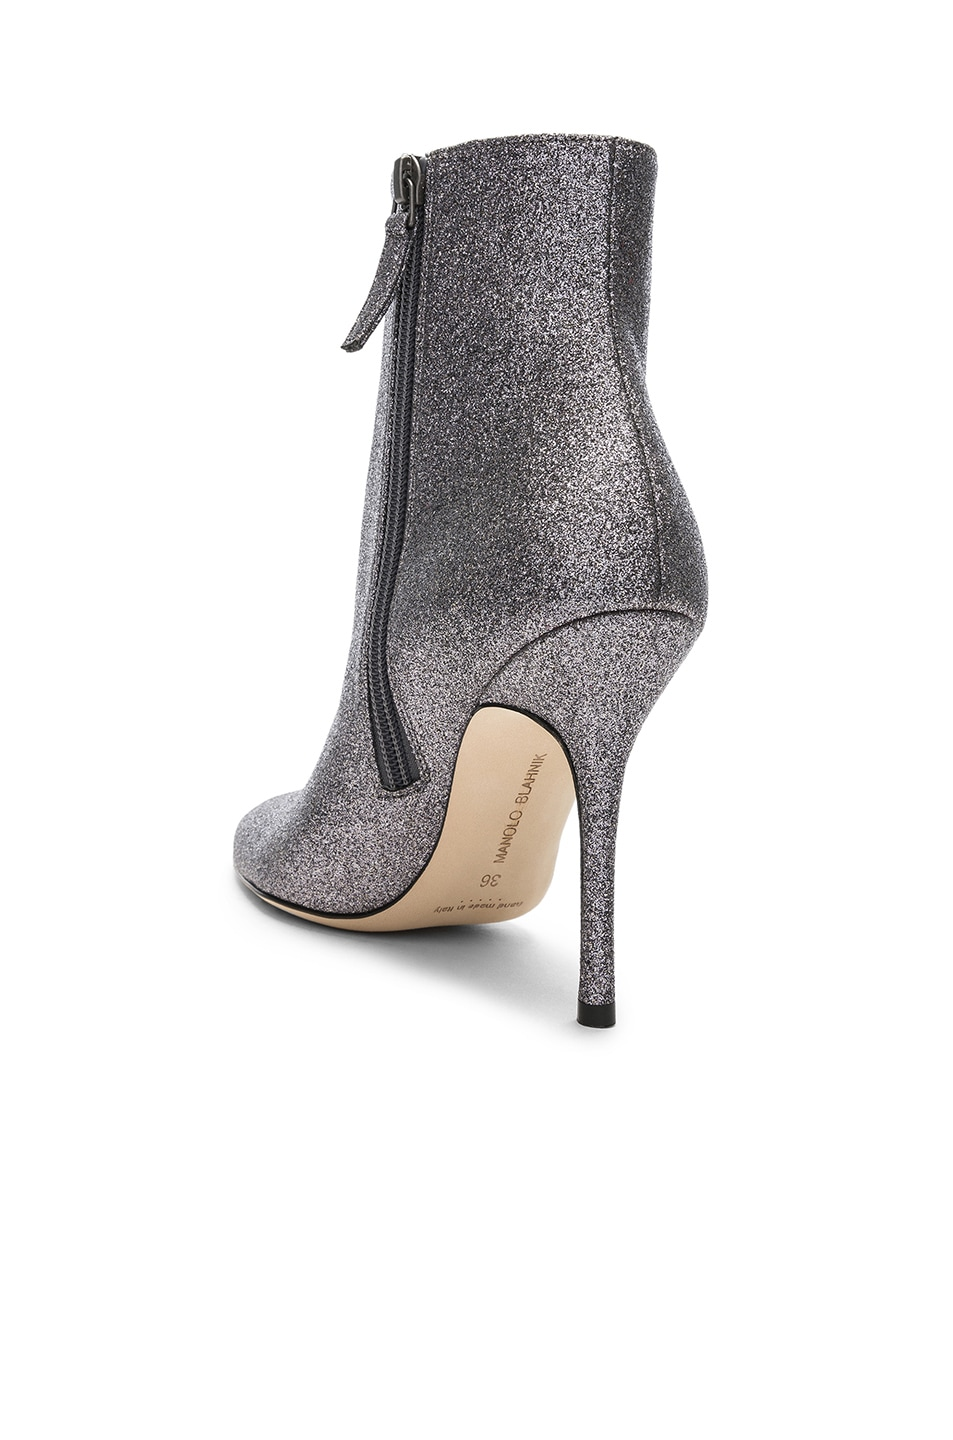 Image 3 of Manolo Blahnik Glitter Insopo 105 Boots in Anthracite